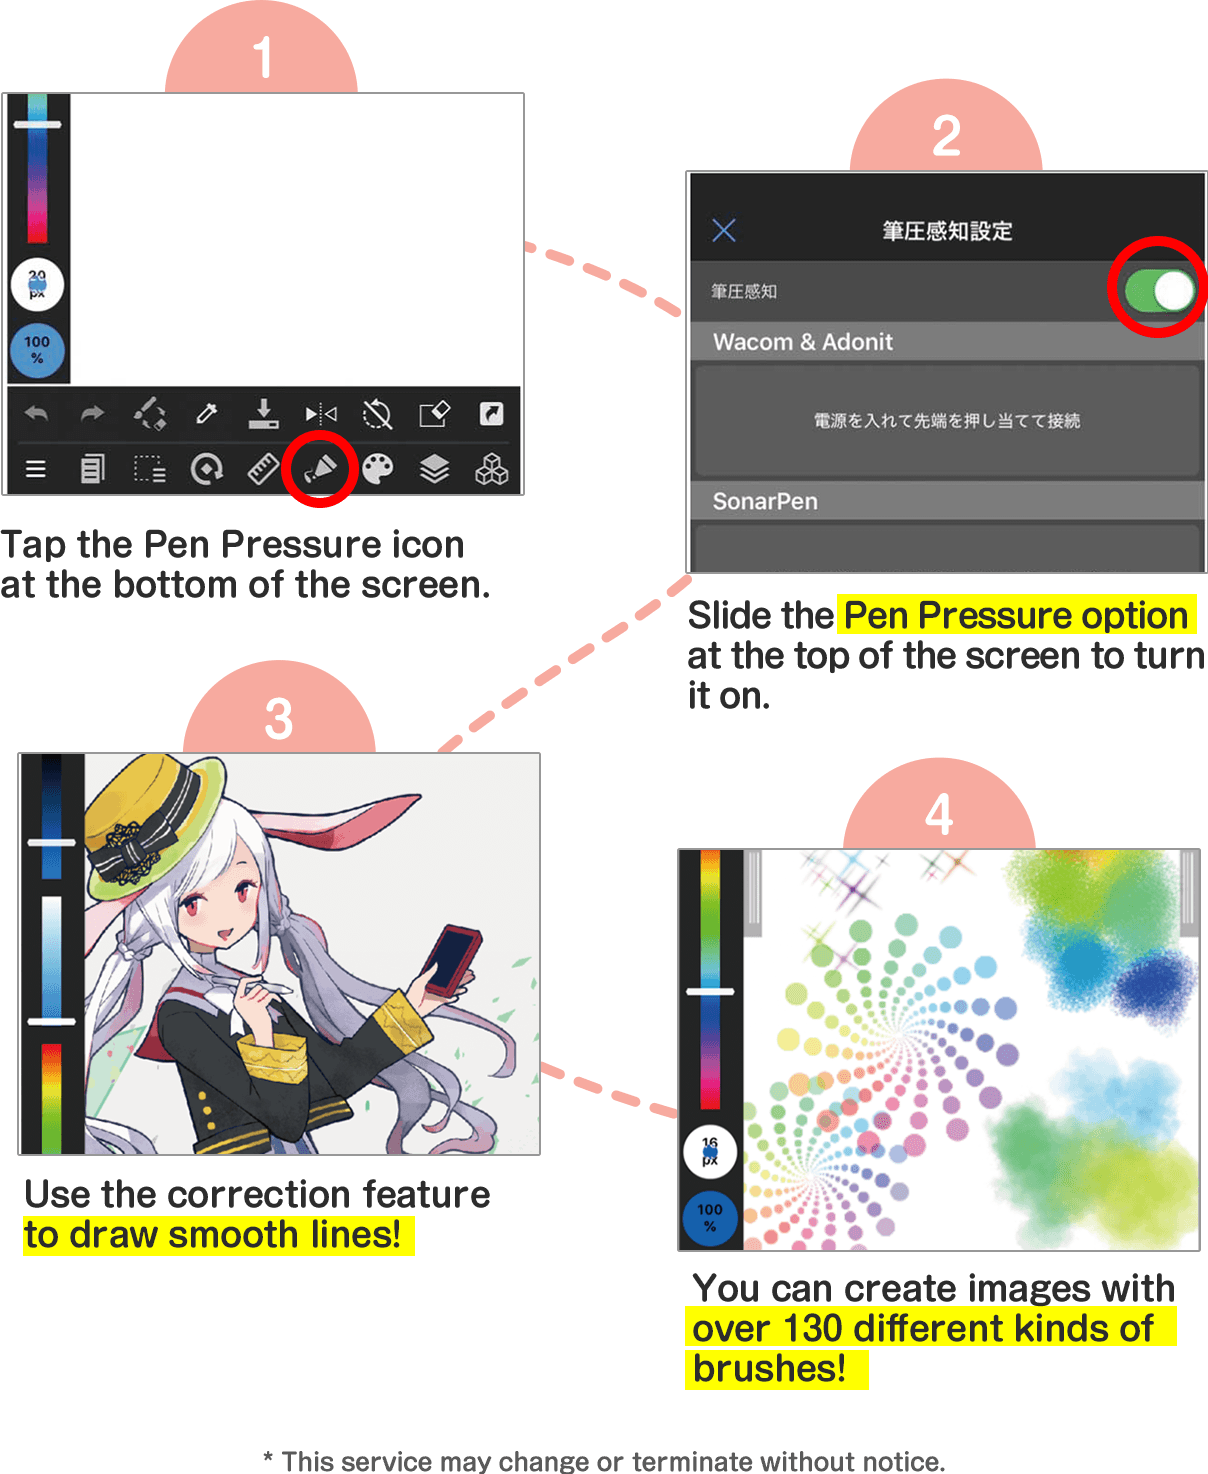 1. Tap the Pen Pressure icon at the bottom of the screen. 22. Slide the Pen Pressure option at the top of the screen to turn it on. 3. Use the correction feature to draw smooth lines! 4. You can create images with over 130 different kinds of brushes! * This service may change or terminate without notice.